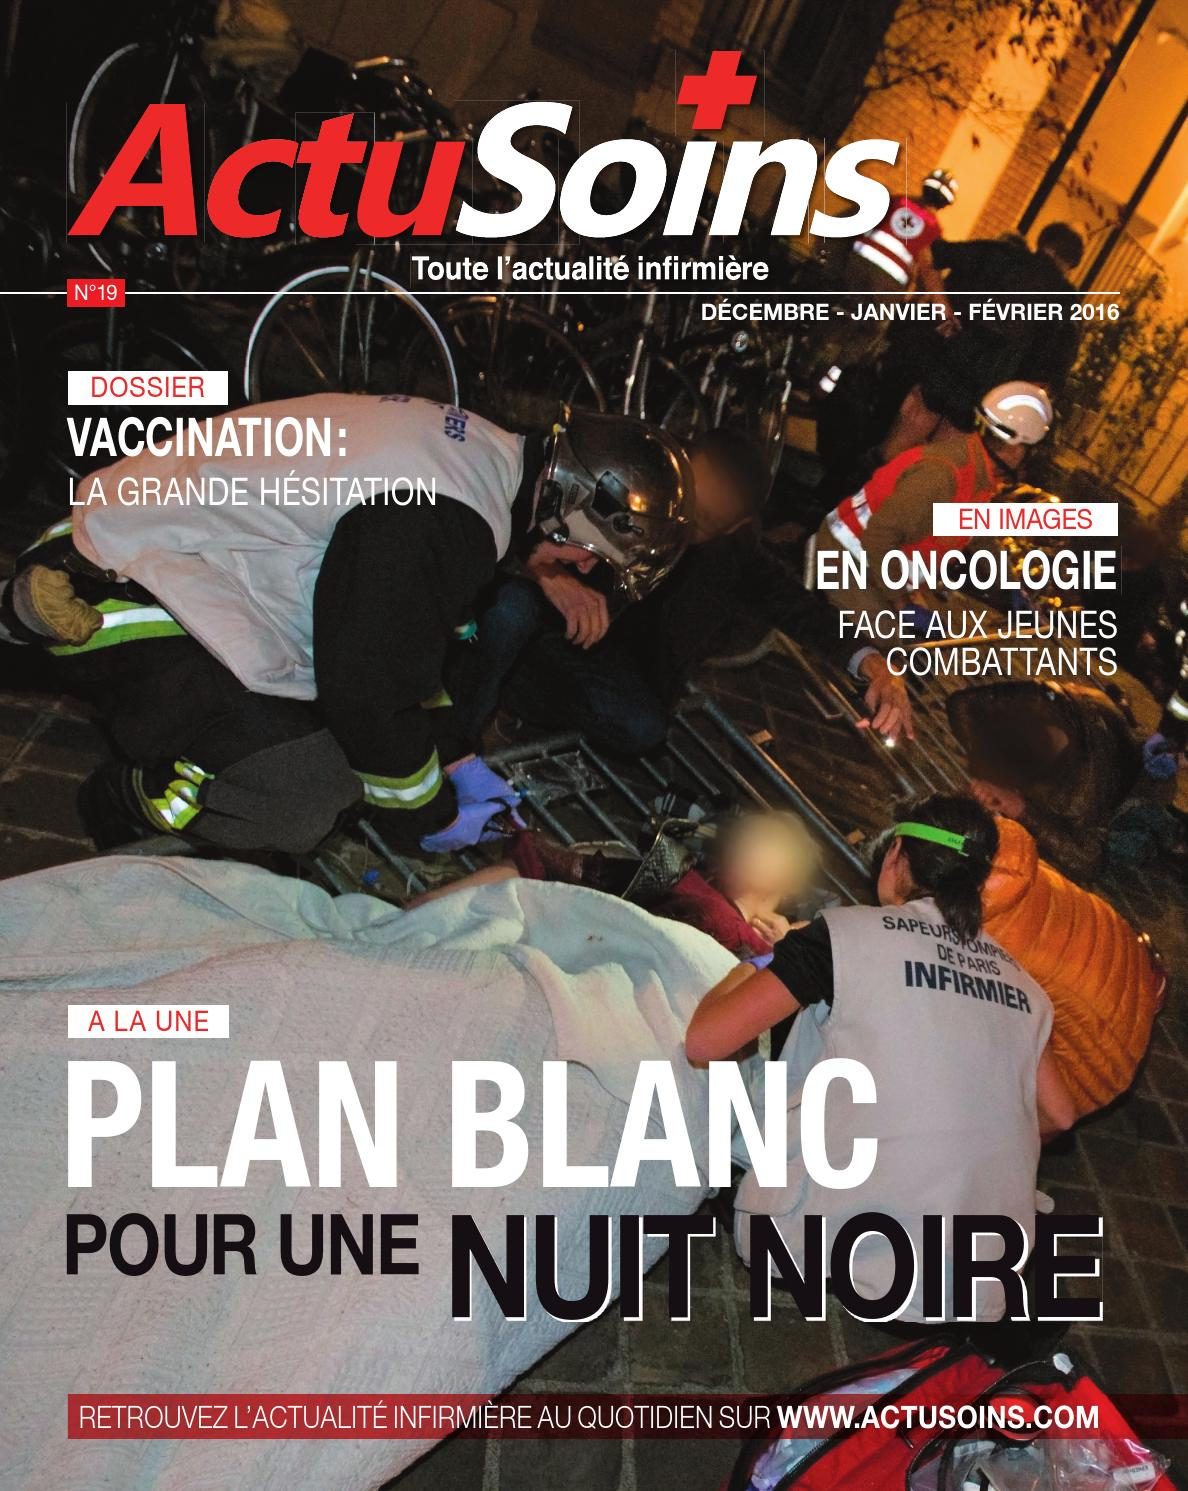 Actusoins Magazine N19 Dcembre 2015 By Thomas Duvernoy